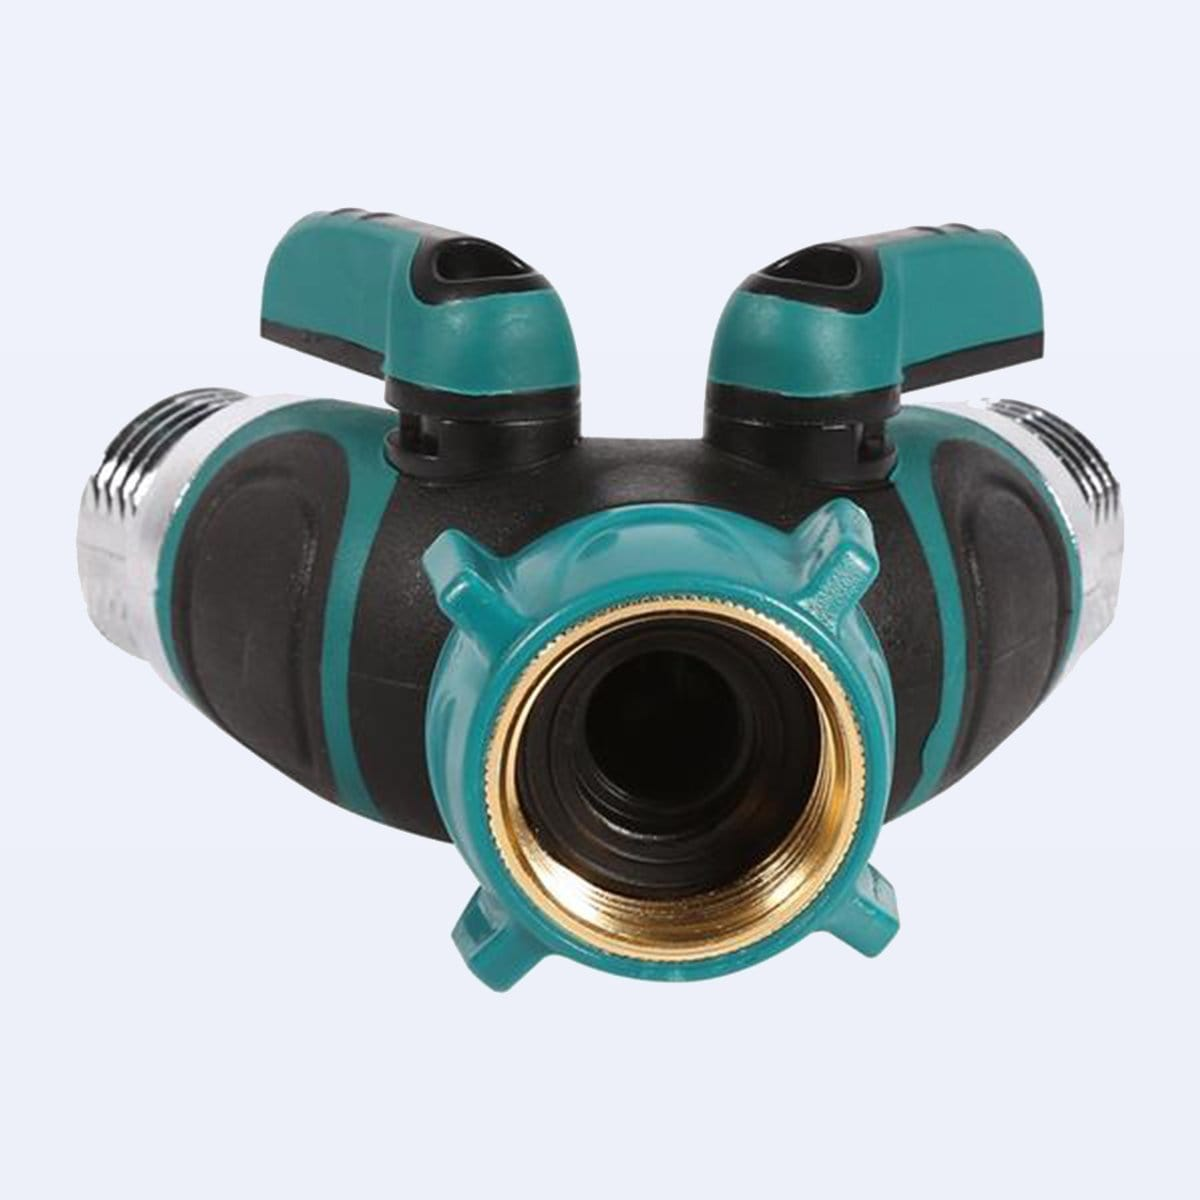 2-Way Garden Hose Splitter